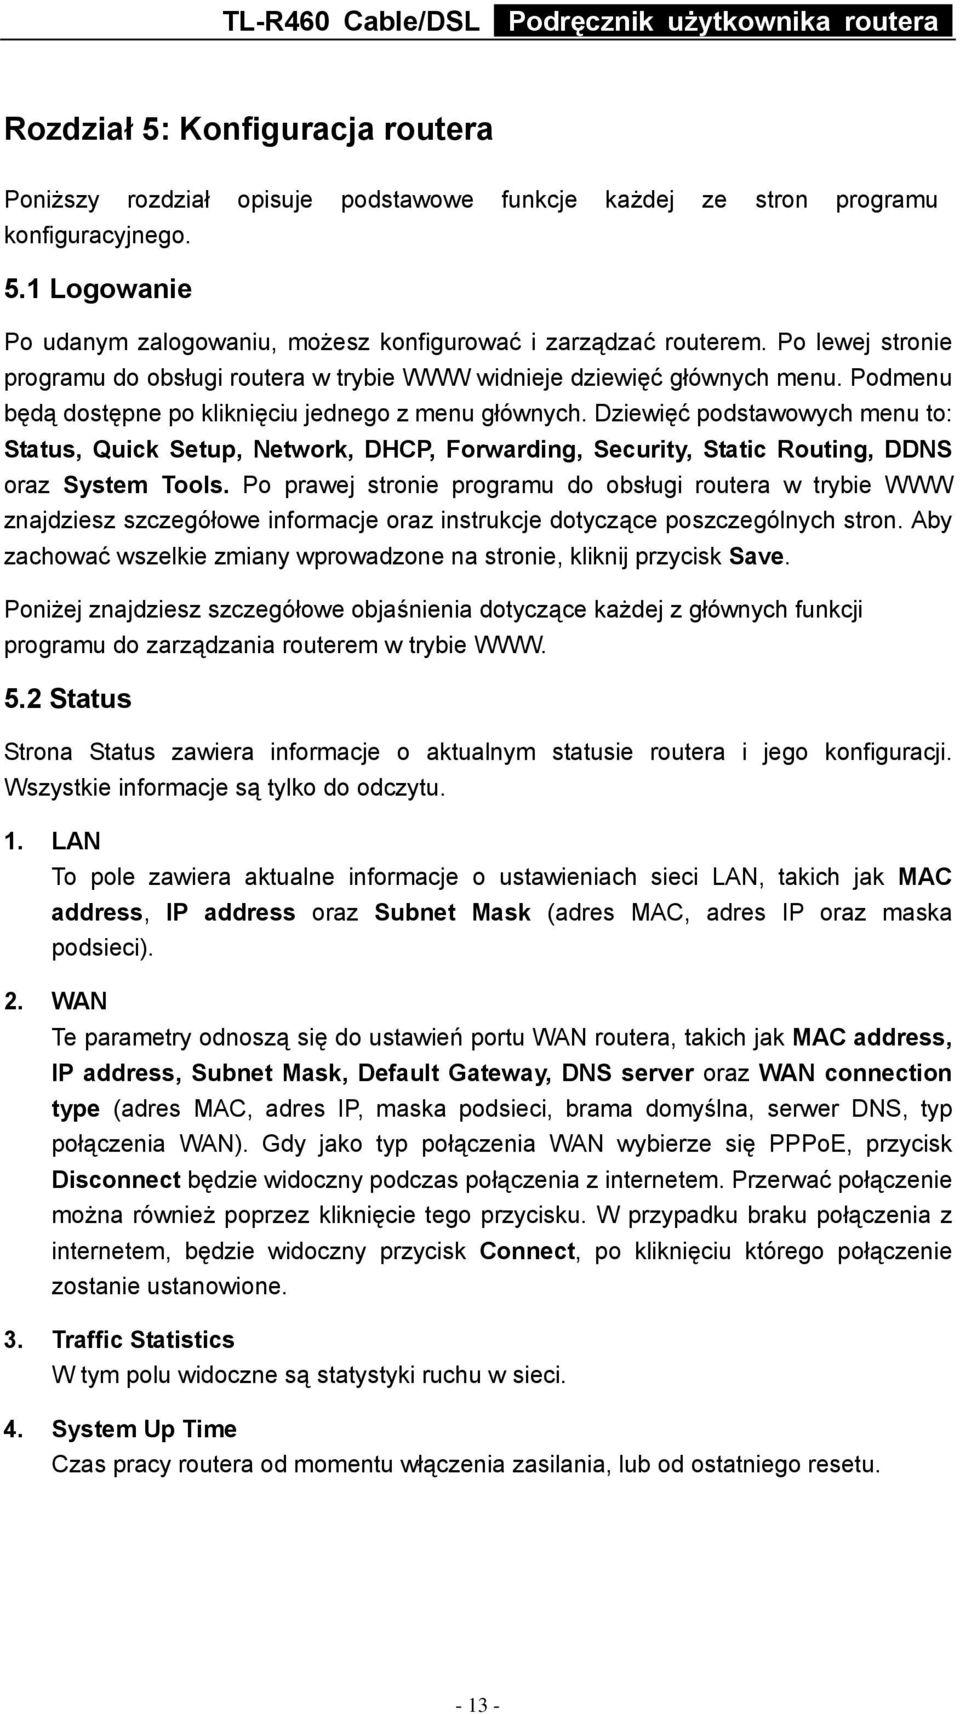 Dziewięć podstawowych menu to: Status, Quick Setup, Network, DHCP, Forwarding, Security, Static Routing, DDNS oraz System Tools.